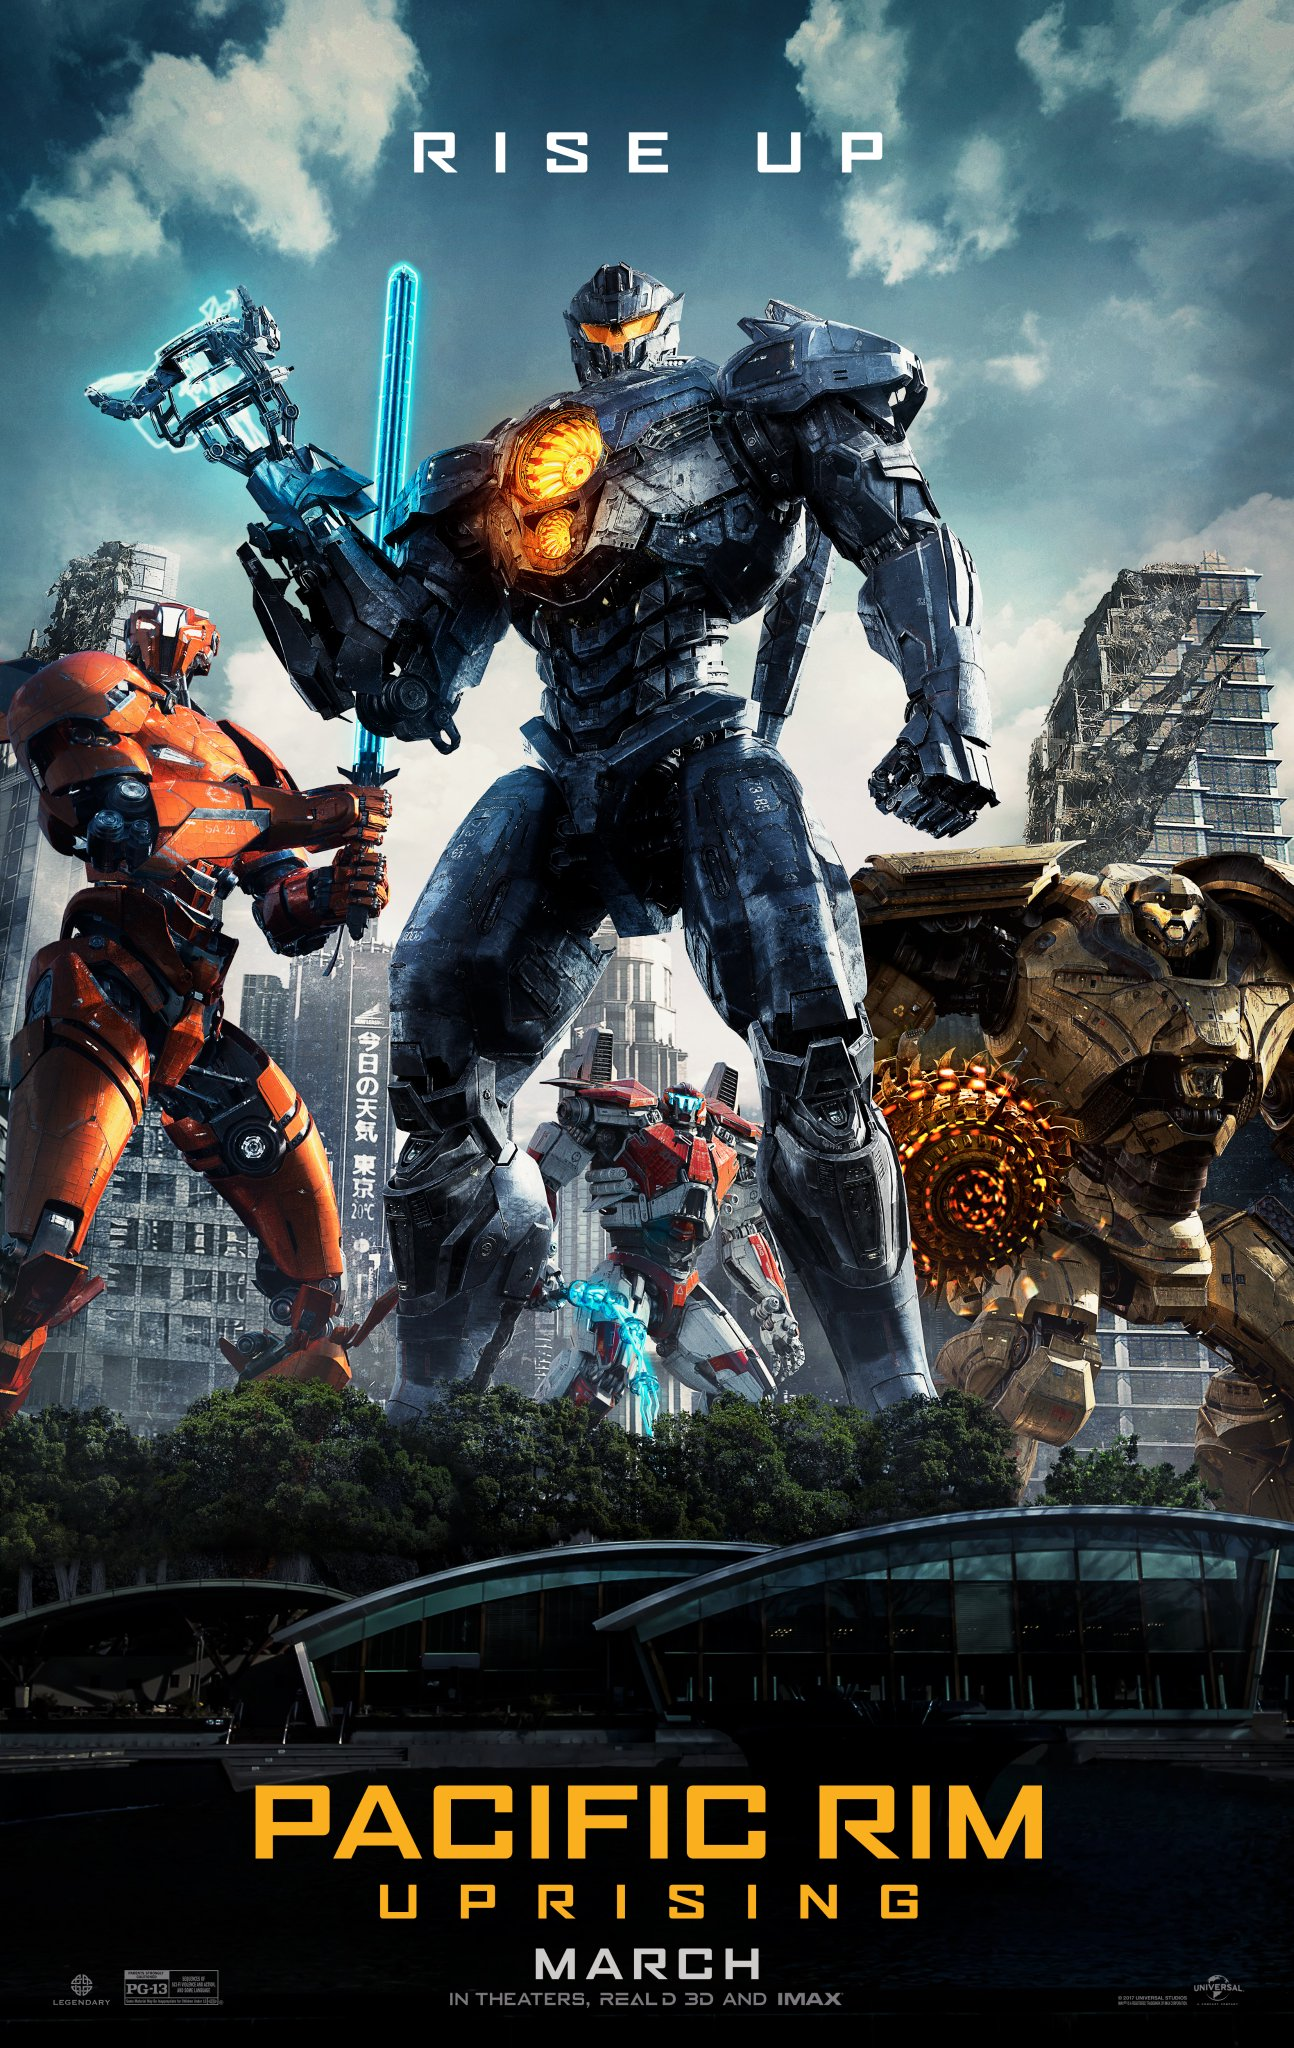 Watch the Latest 'Pacific Rim Uprising' Trailer